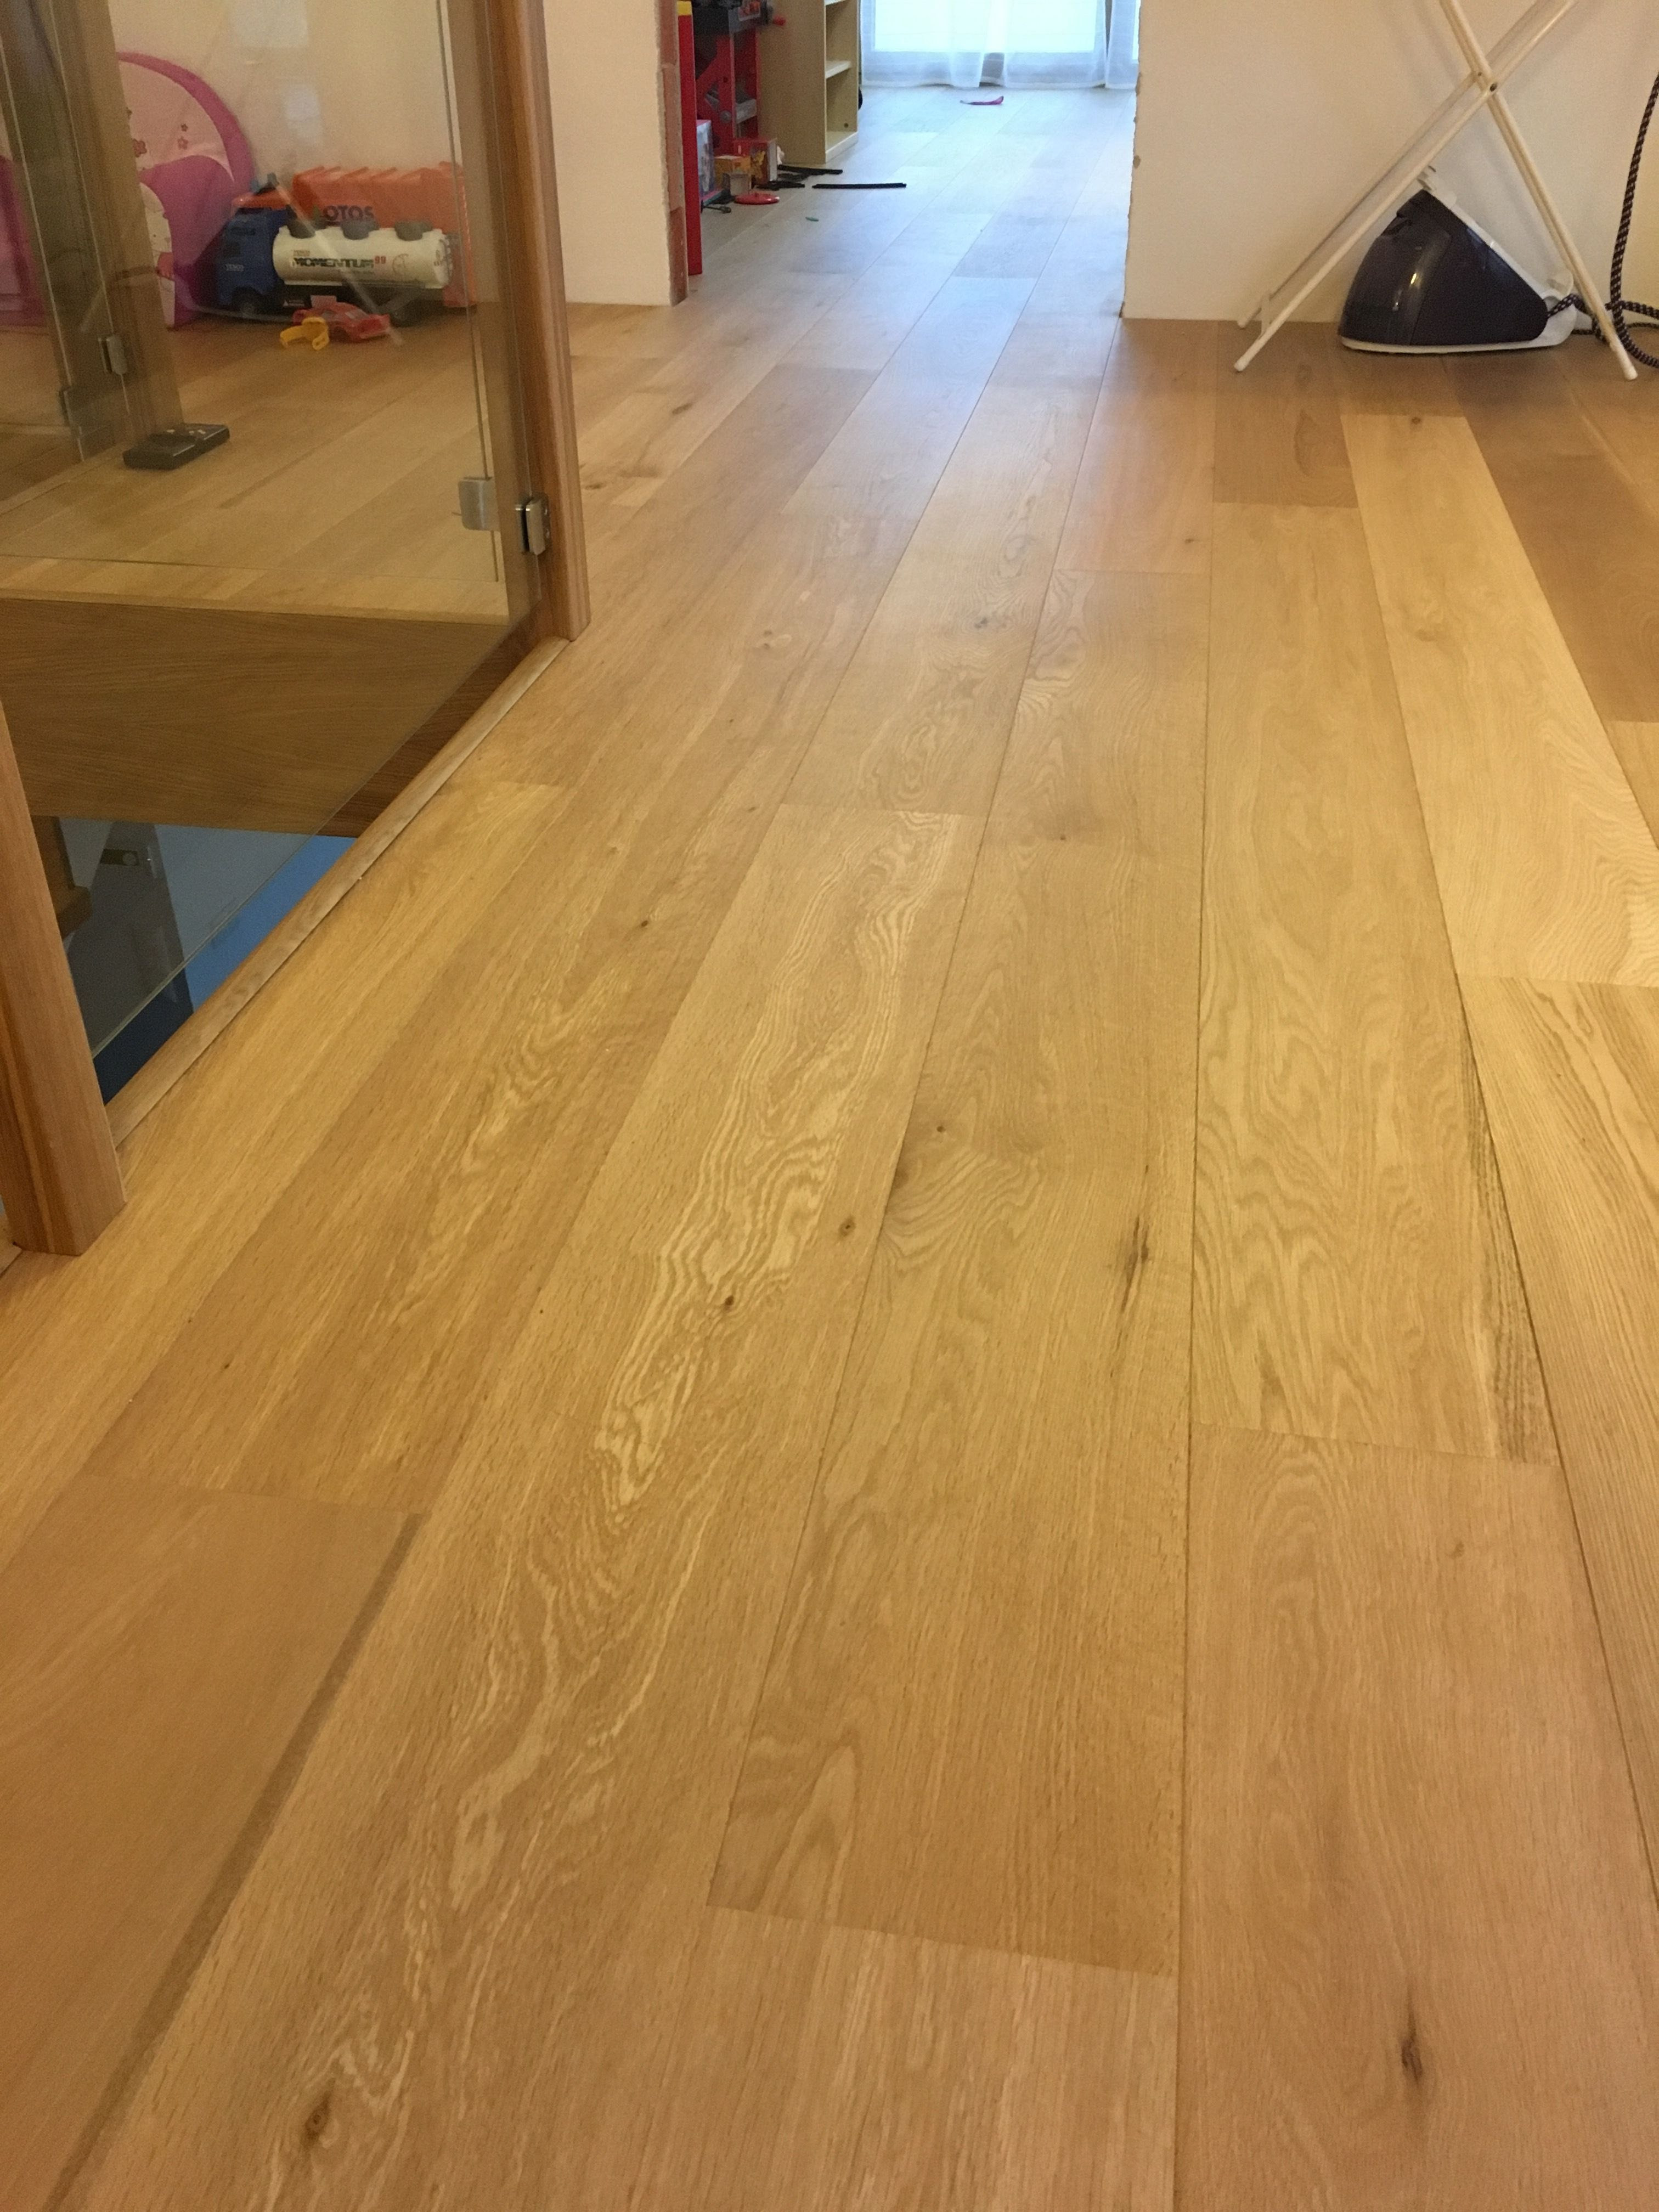 refinishing old hardwood floors cost of cost to refinish hardwood floors floor plan ideas with cost to refinish hardwood floors hardwood or engineered flooring which is better podemosleganes